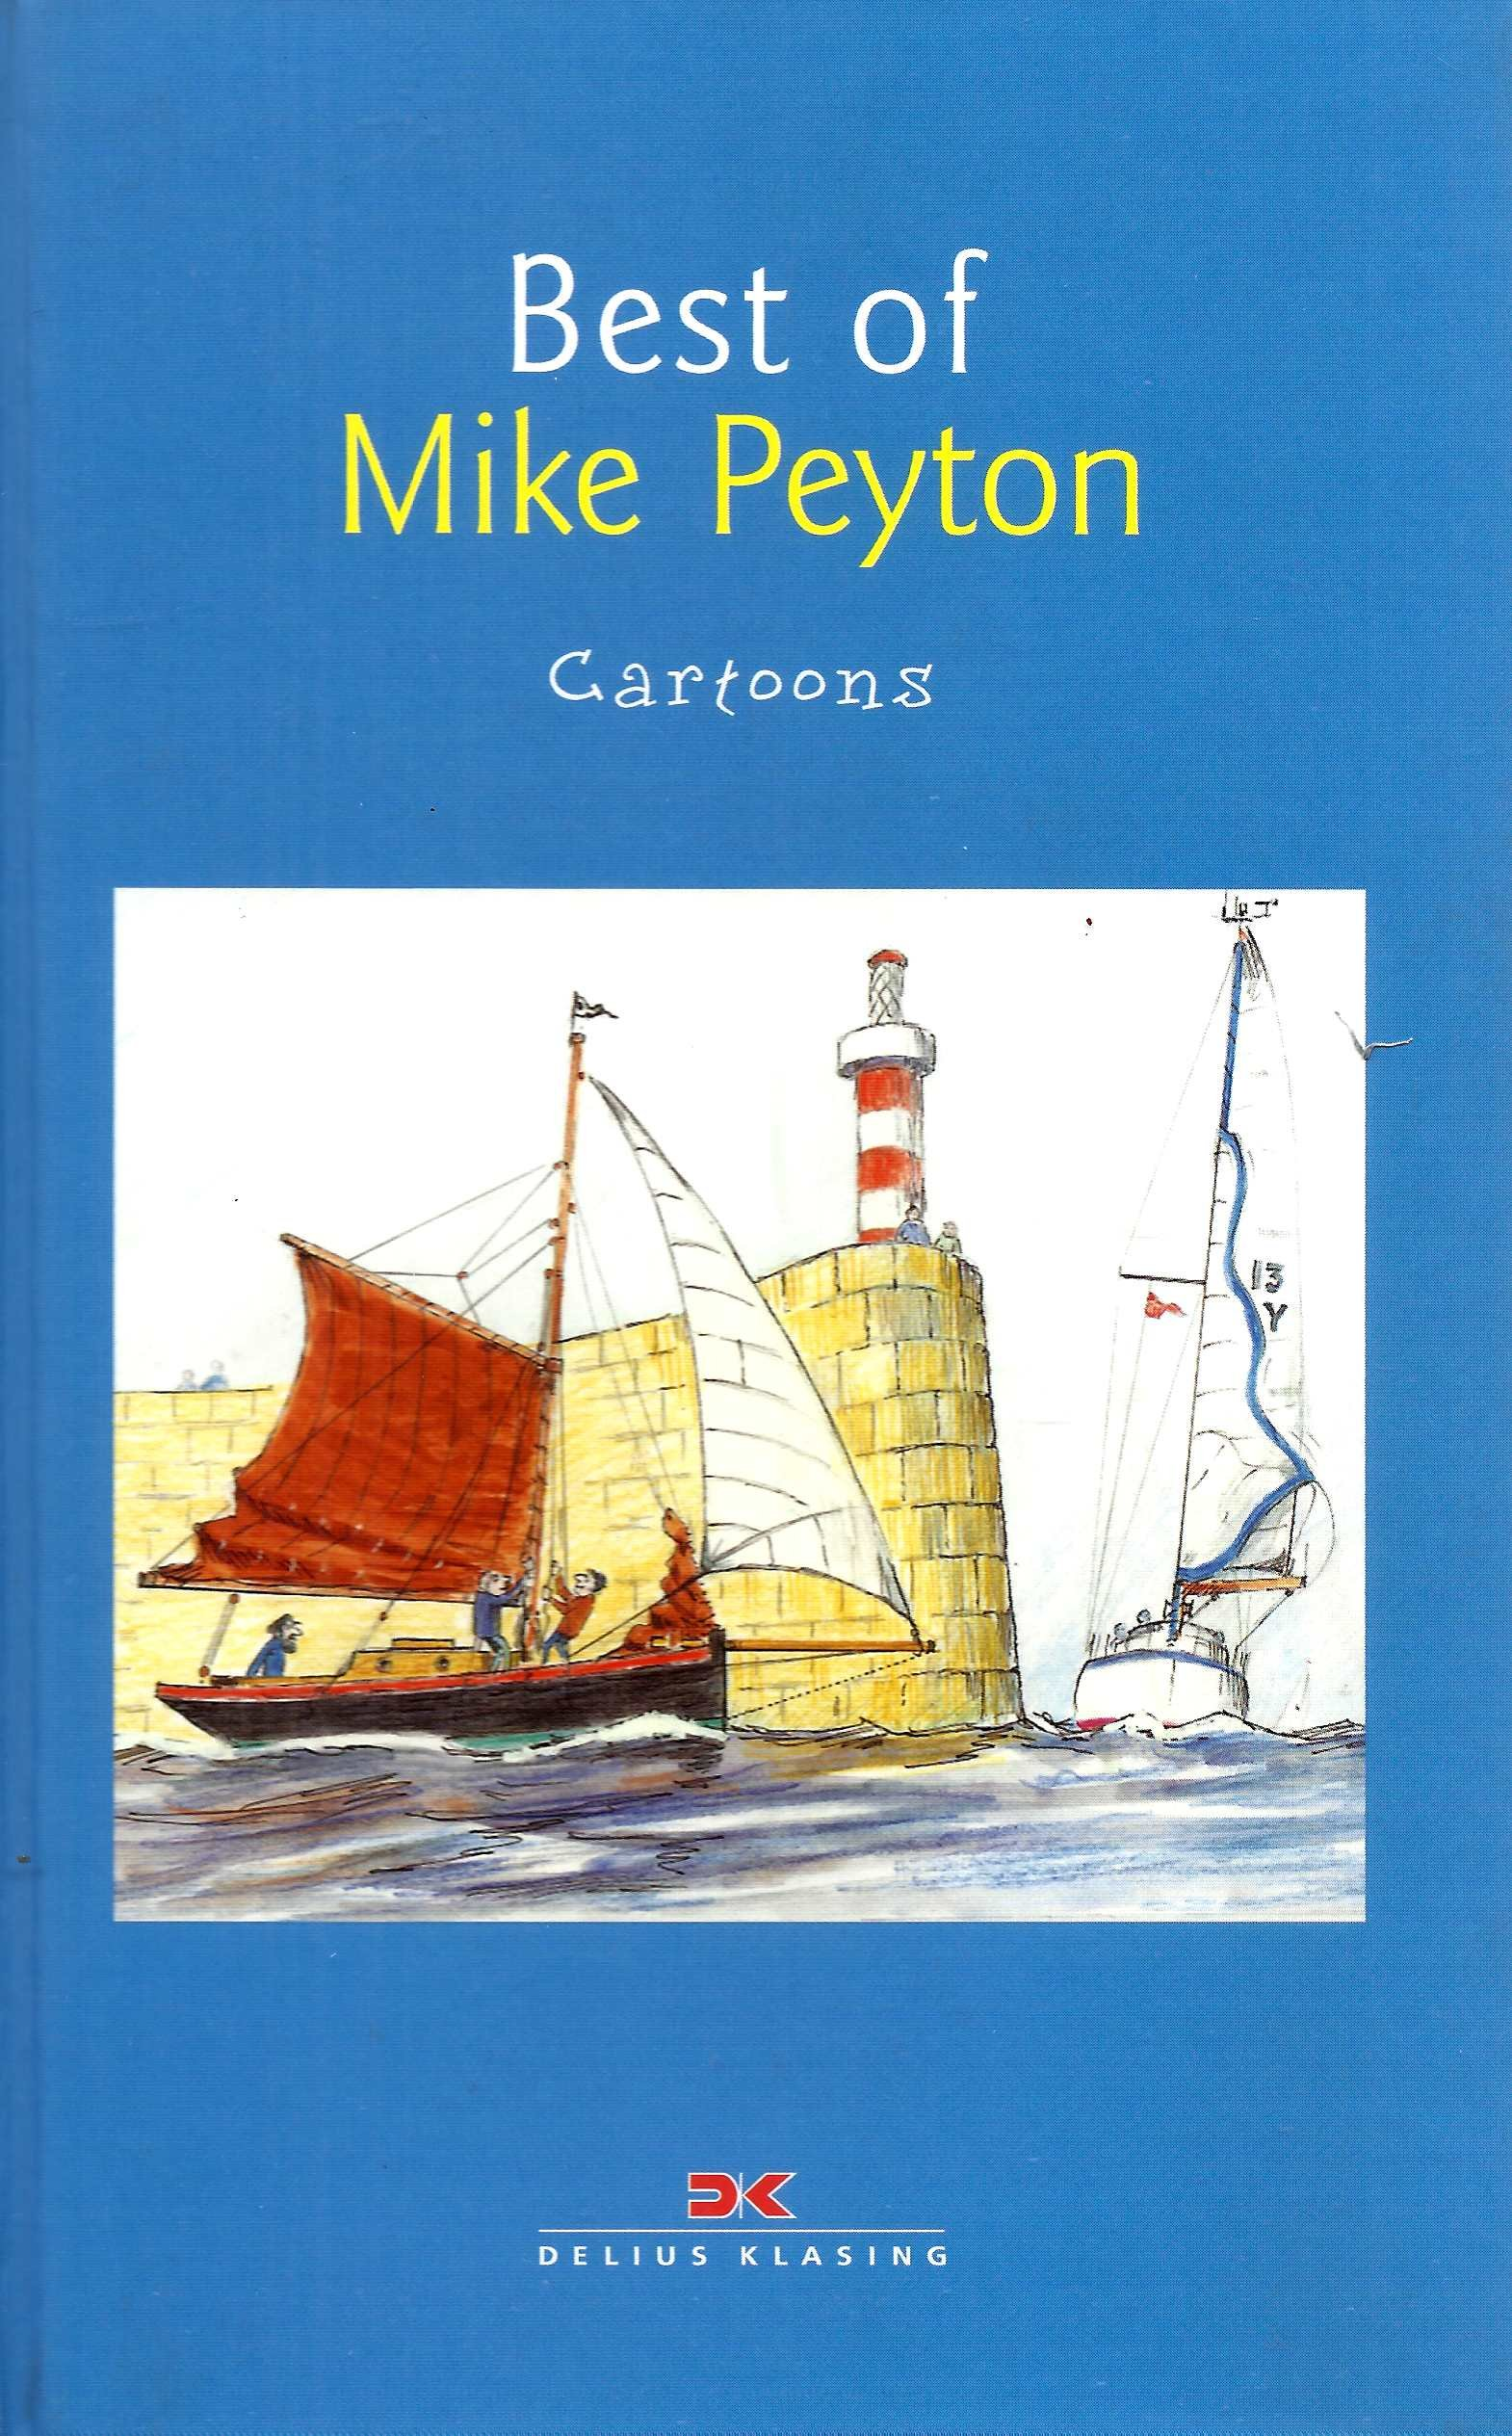 Best of Mike Peyton